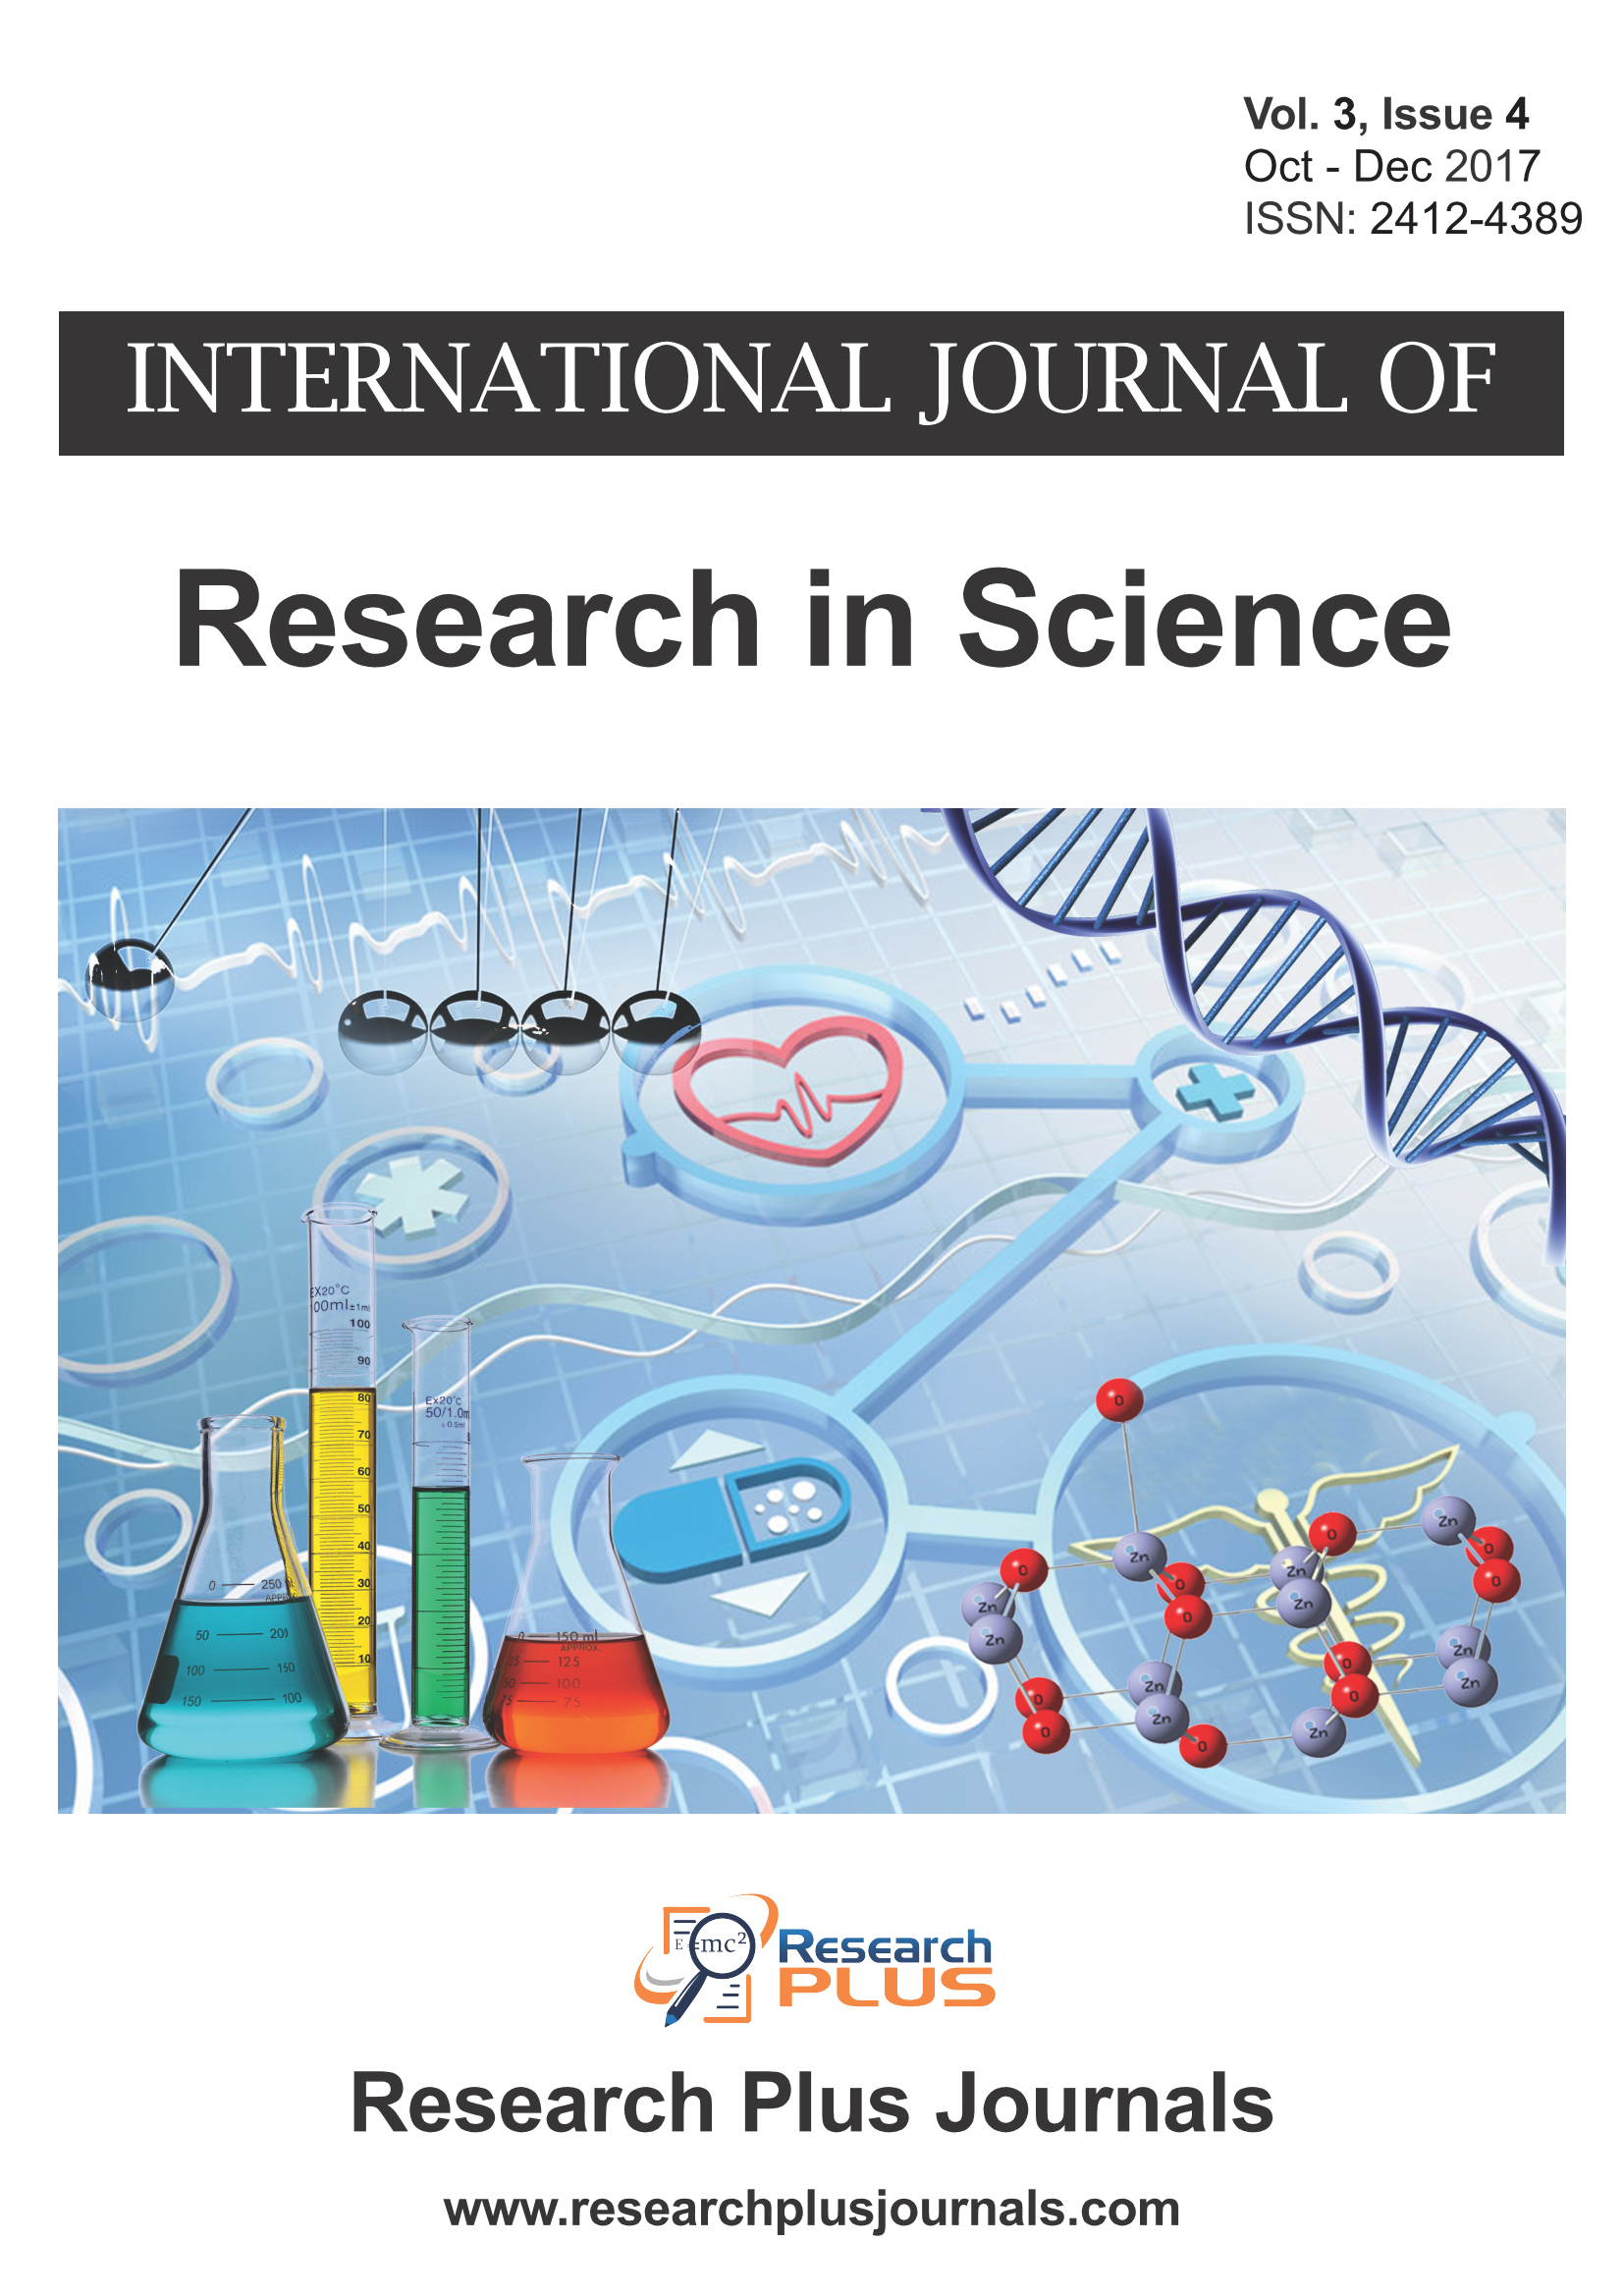 Volume 3, Issue 4, International Journal of Research in Science (IJRS) (Online ISSN 2412-4389)